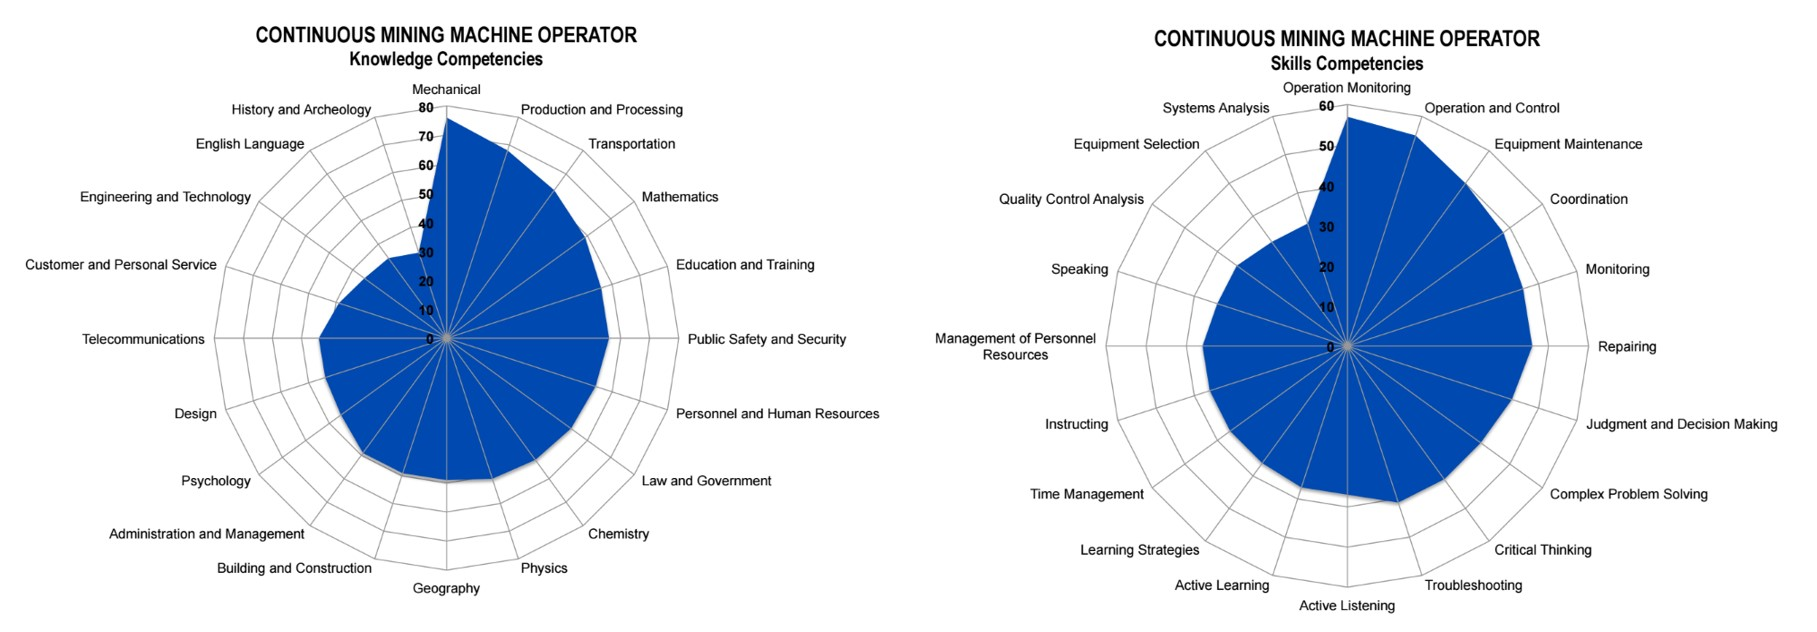 Machine Operator Competencies